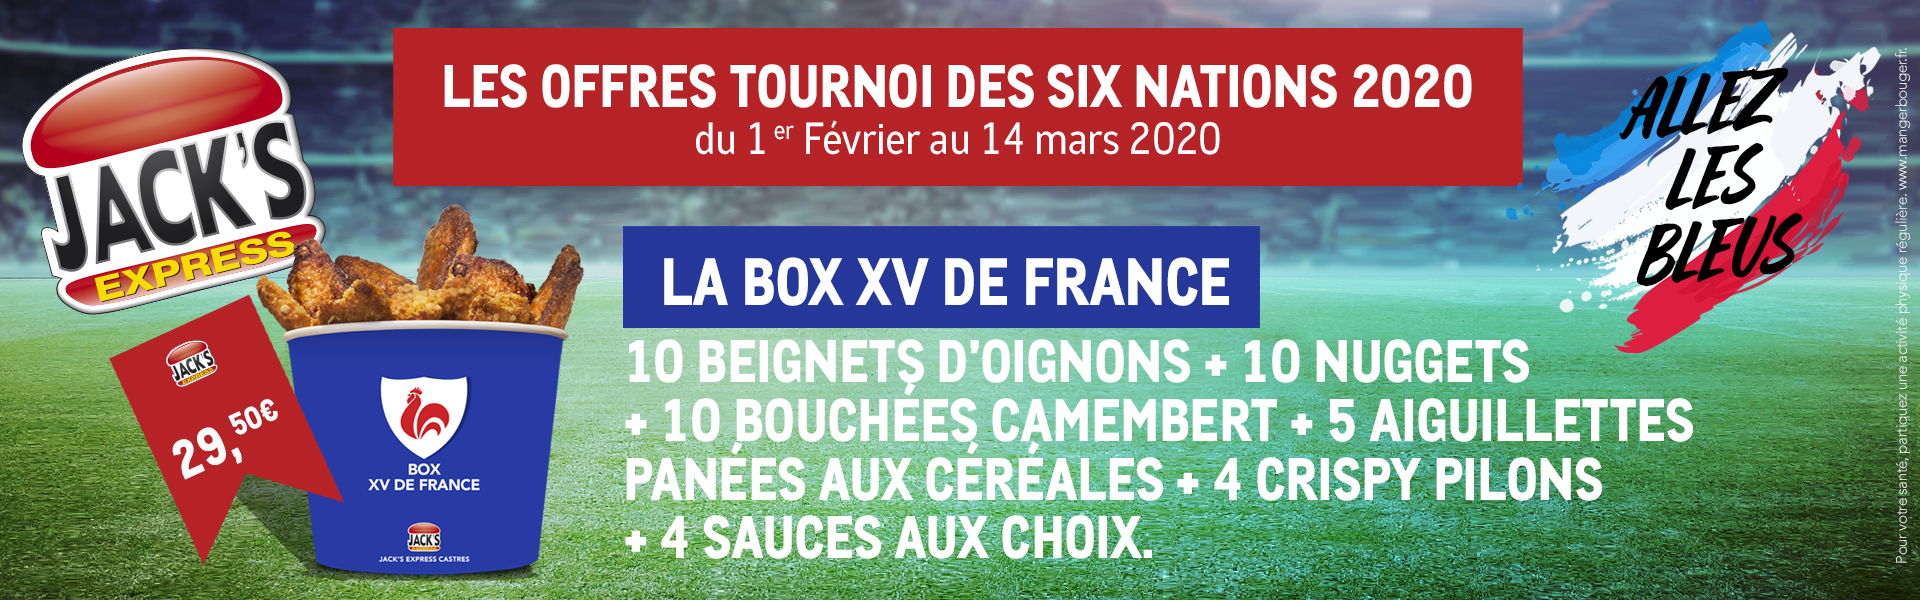 Promo box XV de France tournoi des six nations rugby